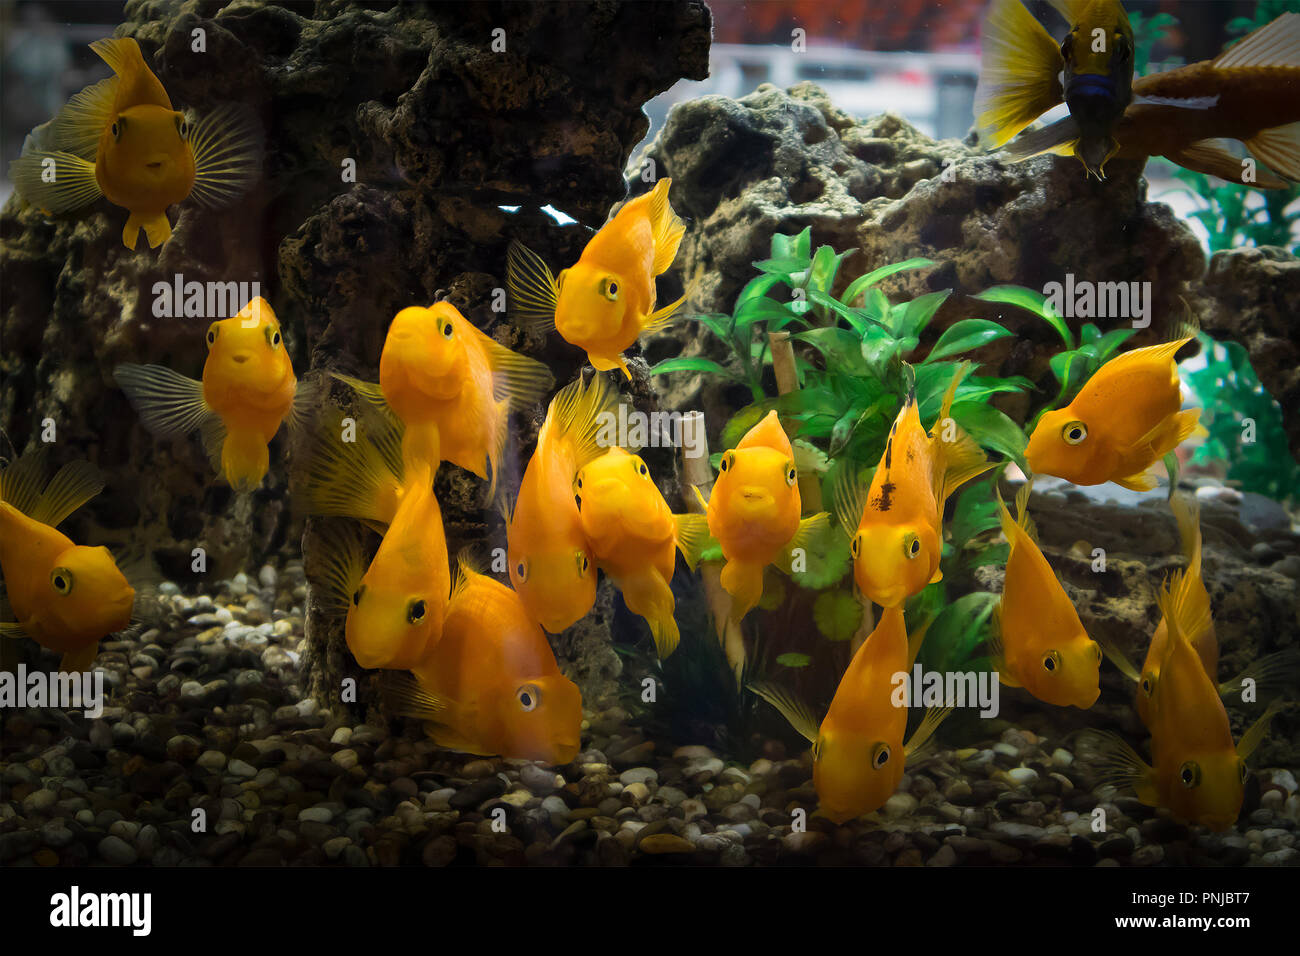 A flock of curious orange fish parrots in the aquarium looking directly into the camera. Darkened vignette - Stock Image